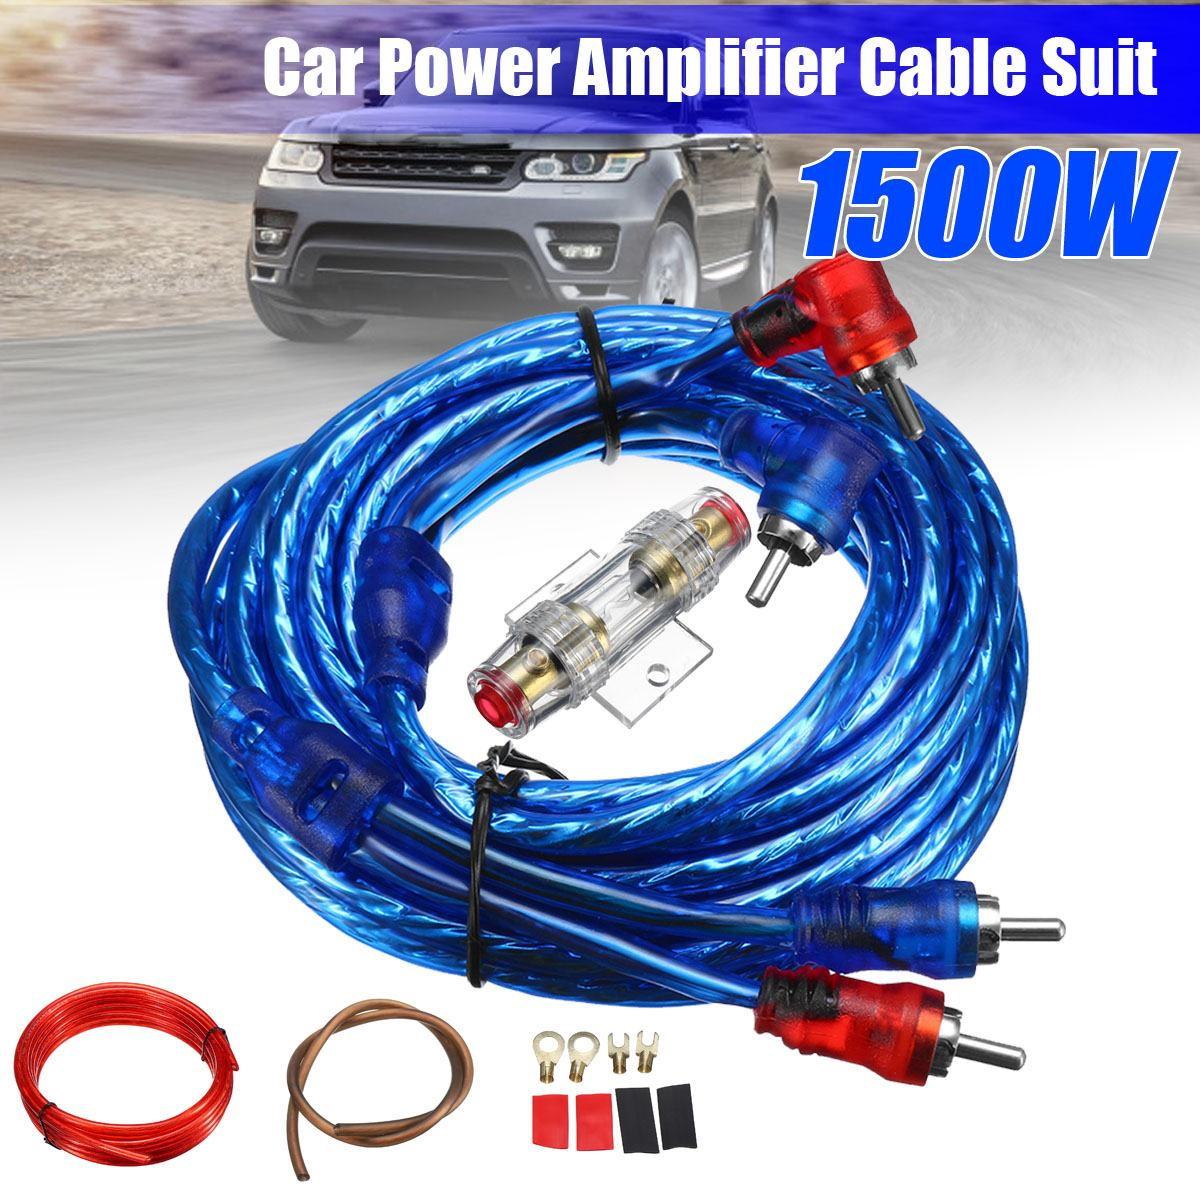 Rca Cable Wire Cords For Subwoofer Dvd Speaker Phono Shielded Stereo 1500w 8ga Car Audio Amplifier Amp Wiring Fuse Holder Installation Kit Power Agu